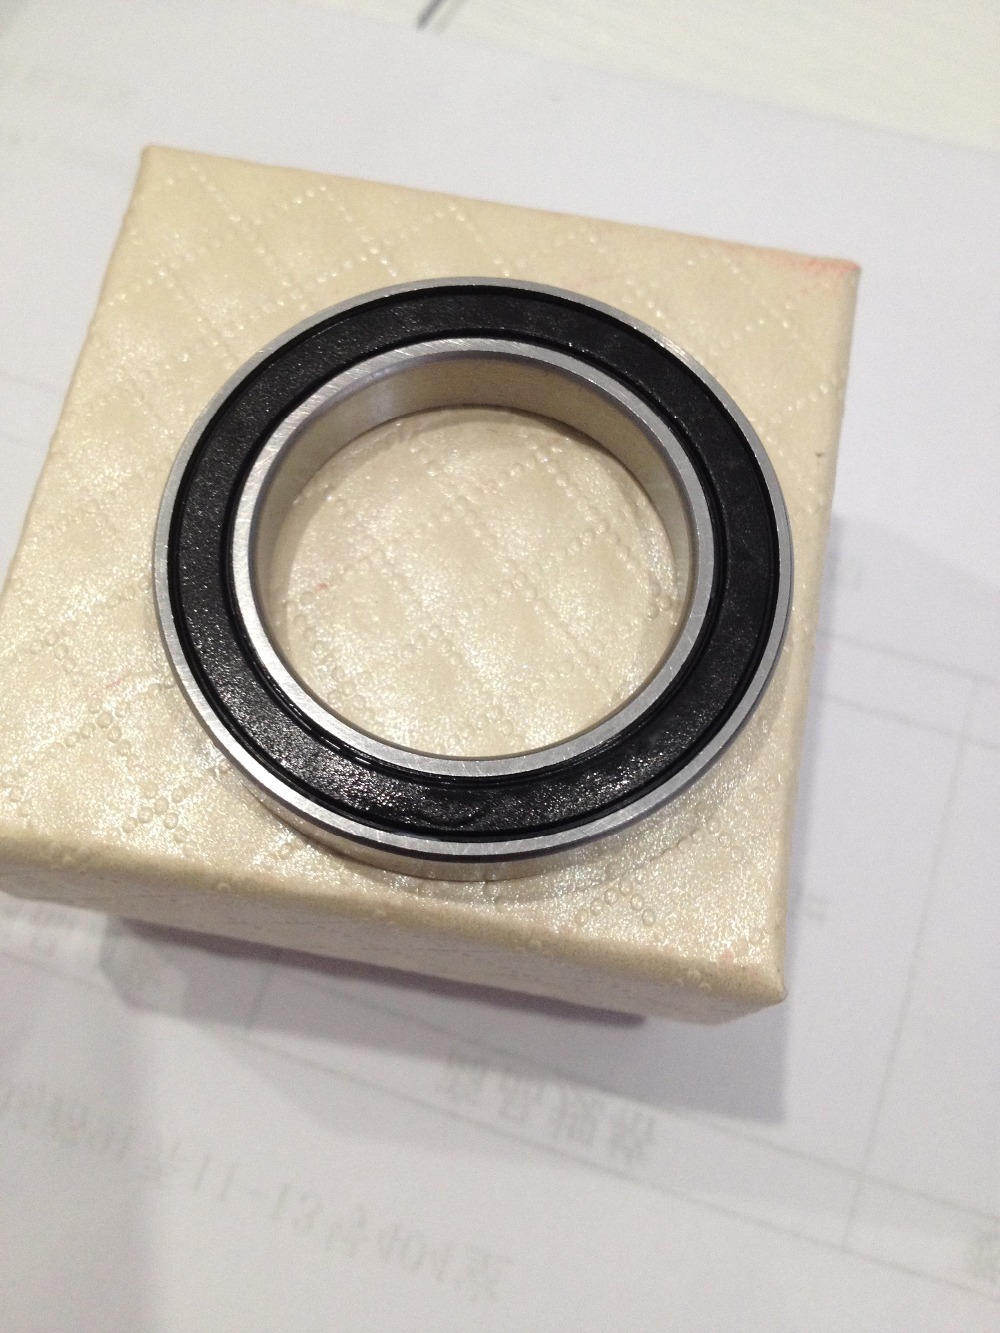 Hollowtech(HT2) bottom bracket bearing 6805N-2RS(25*37*6 mm, stainless ceramic) shimano hollowtech ii в беларуси